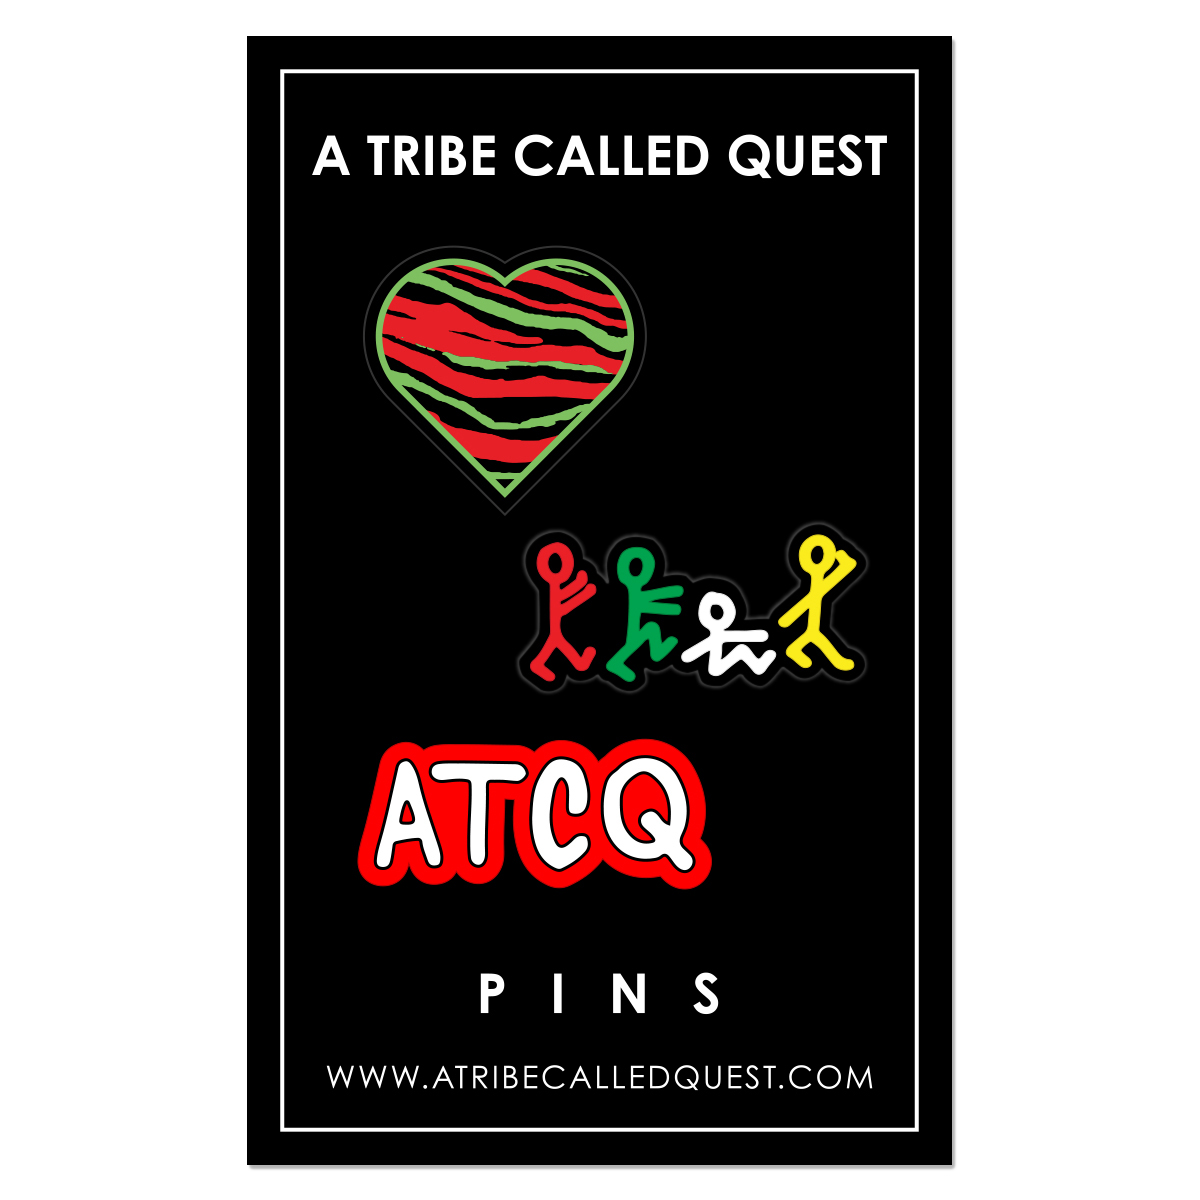 A Tribe Called Quest Pin Set